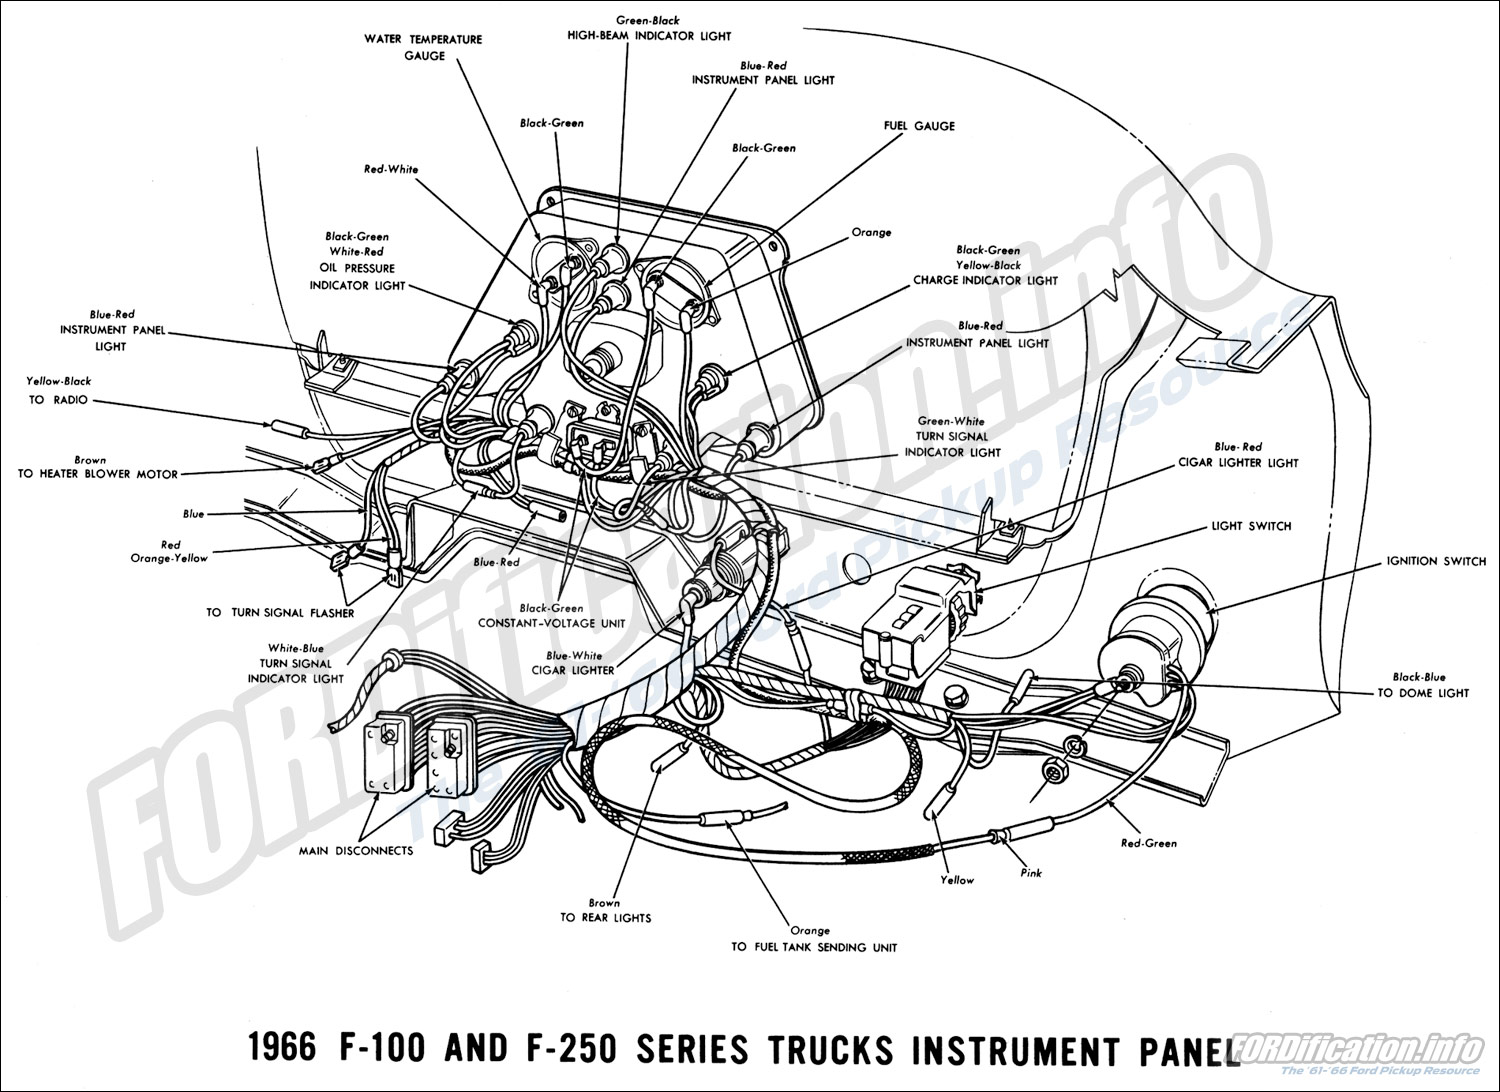 66instrumentpanel 1966 ford truck wiring diagrams fordification info the '61 '66 1966 ford truck wiring diagram at crackthecode.co